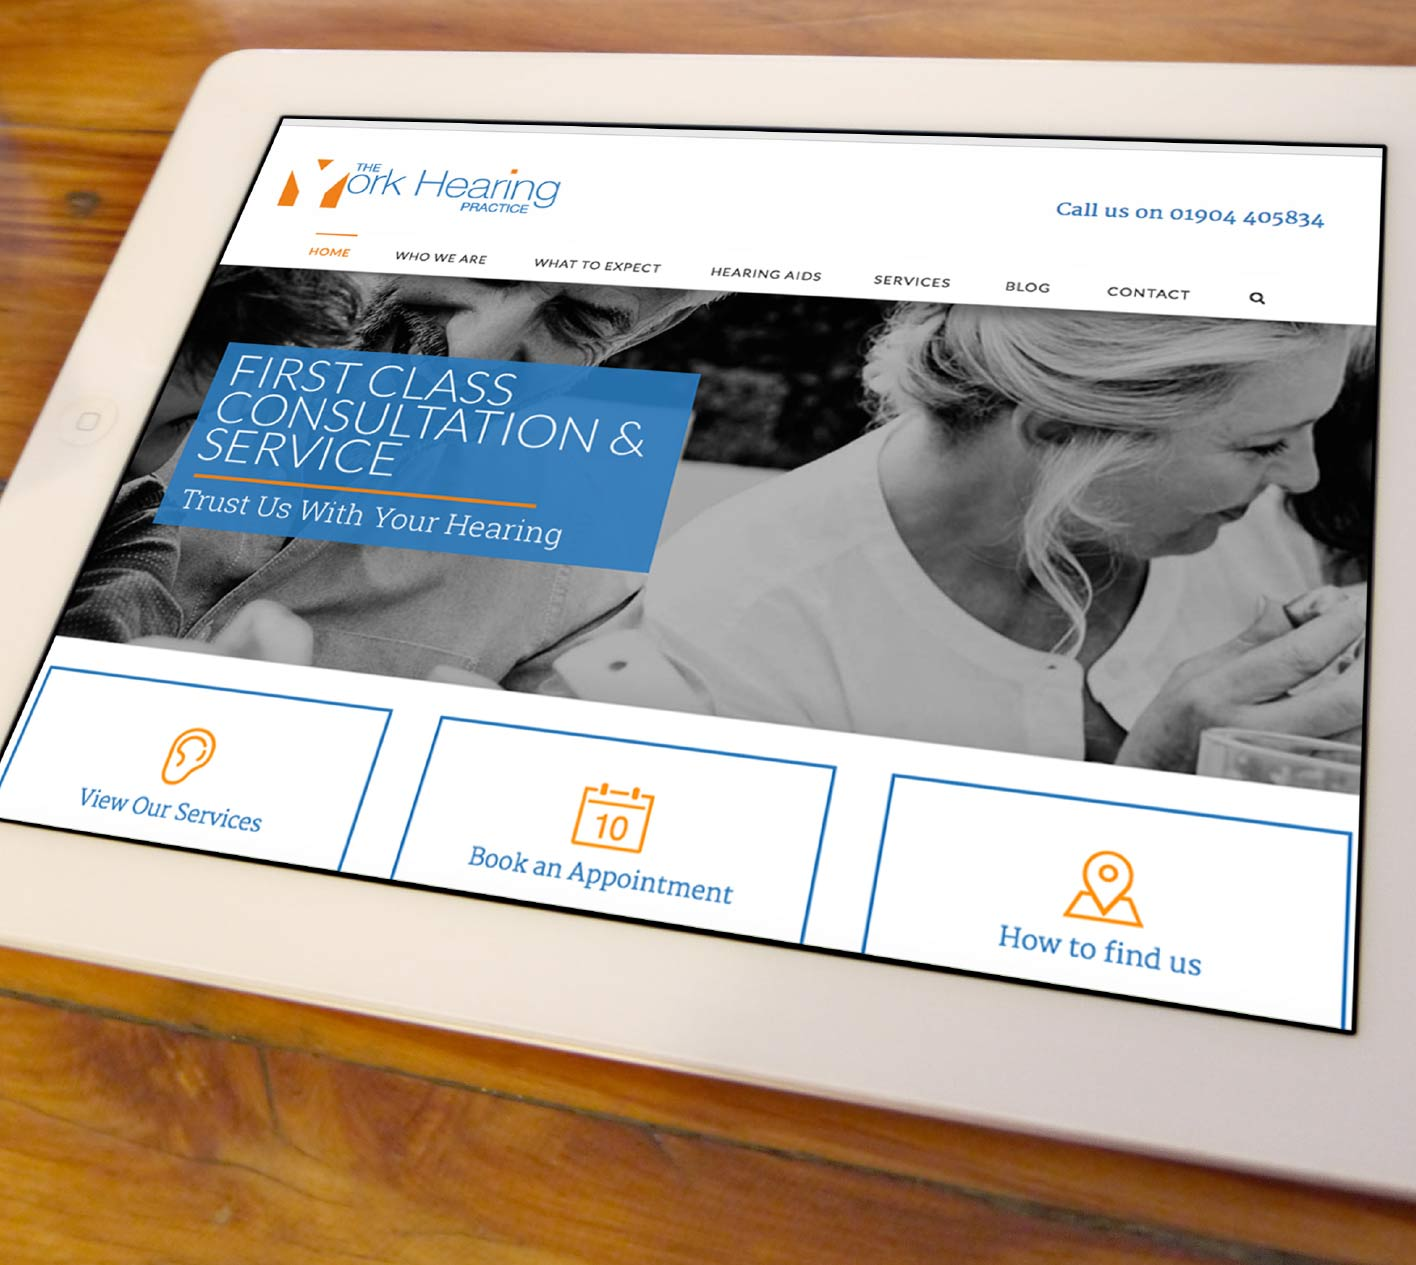 Web design for The York Hearing Practice